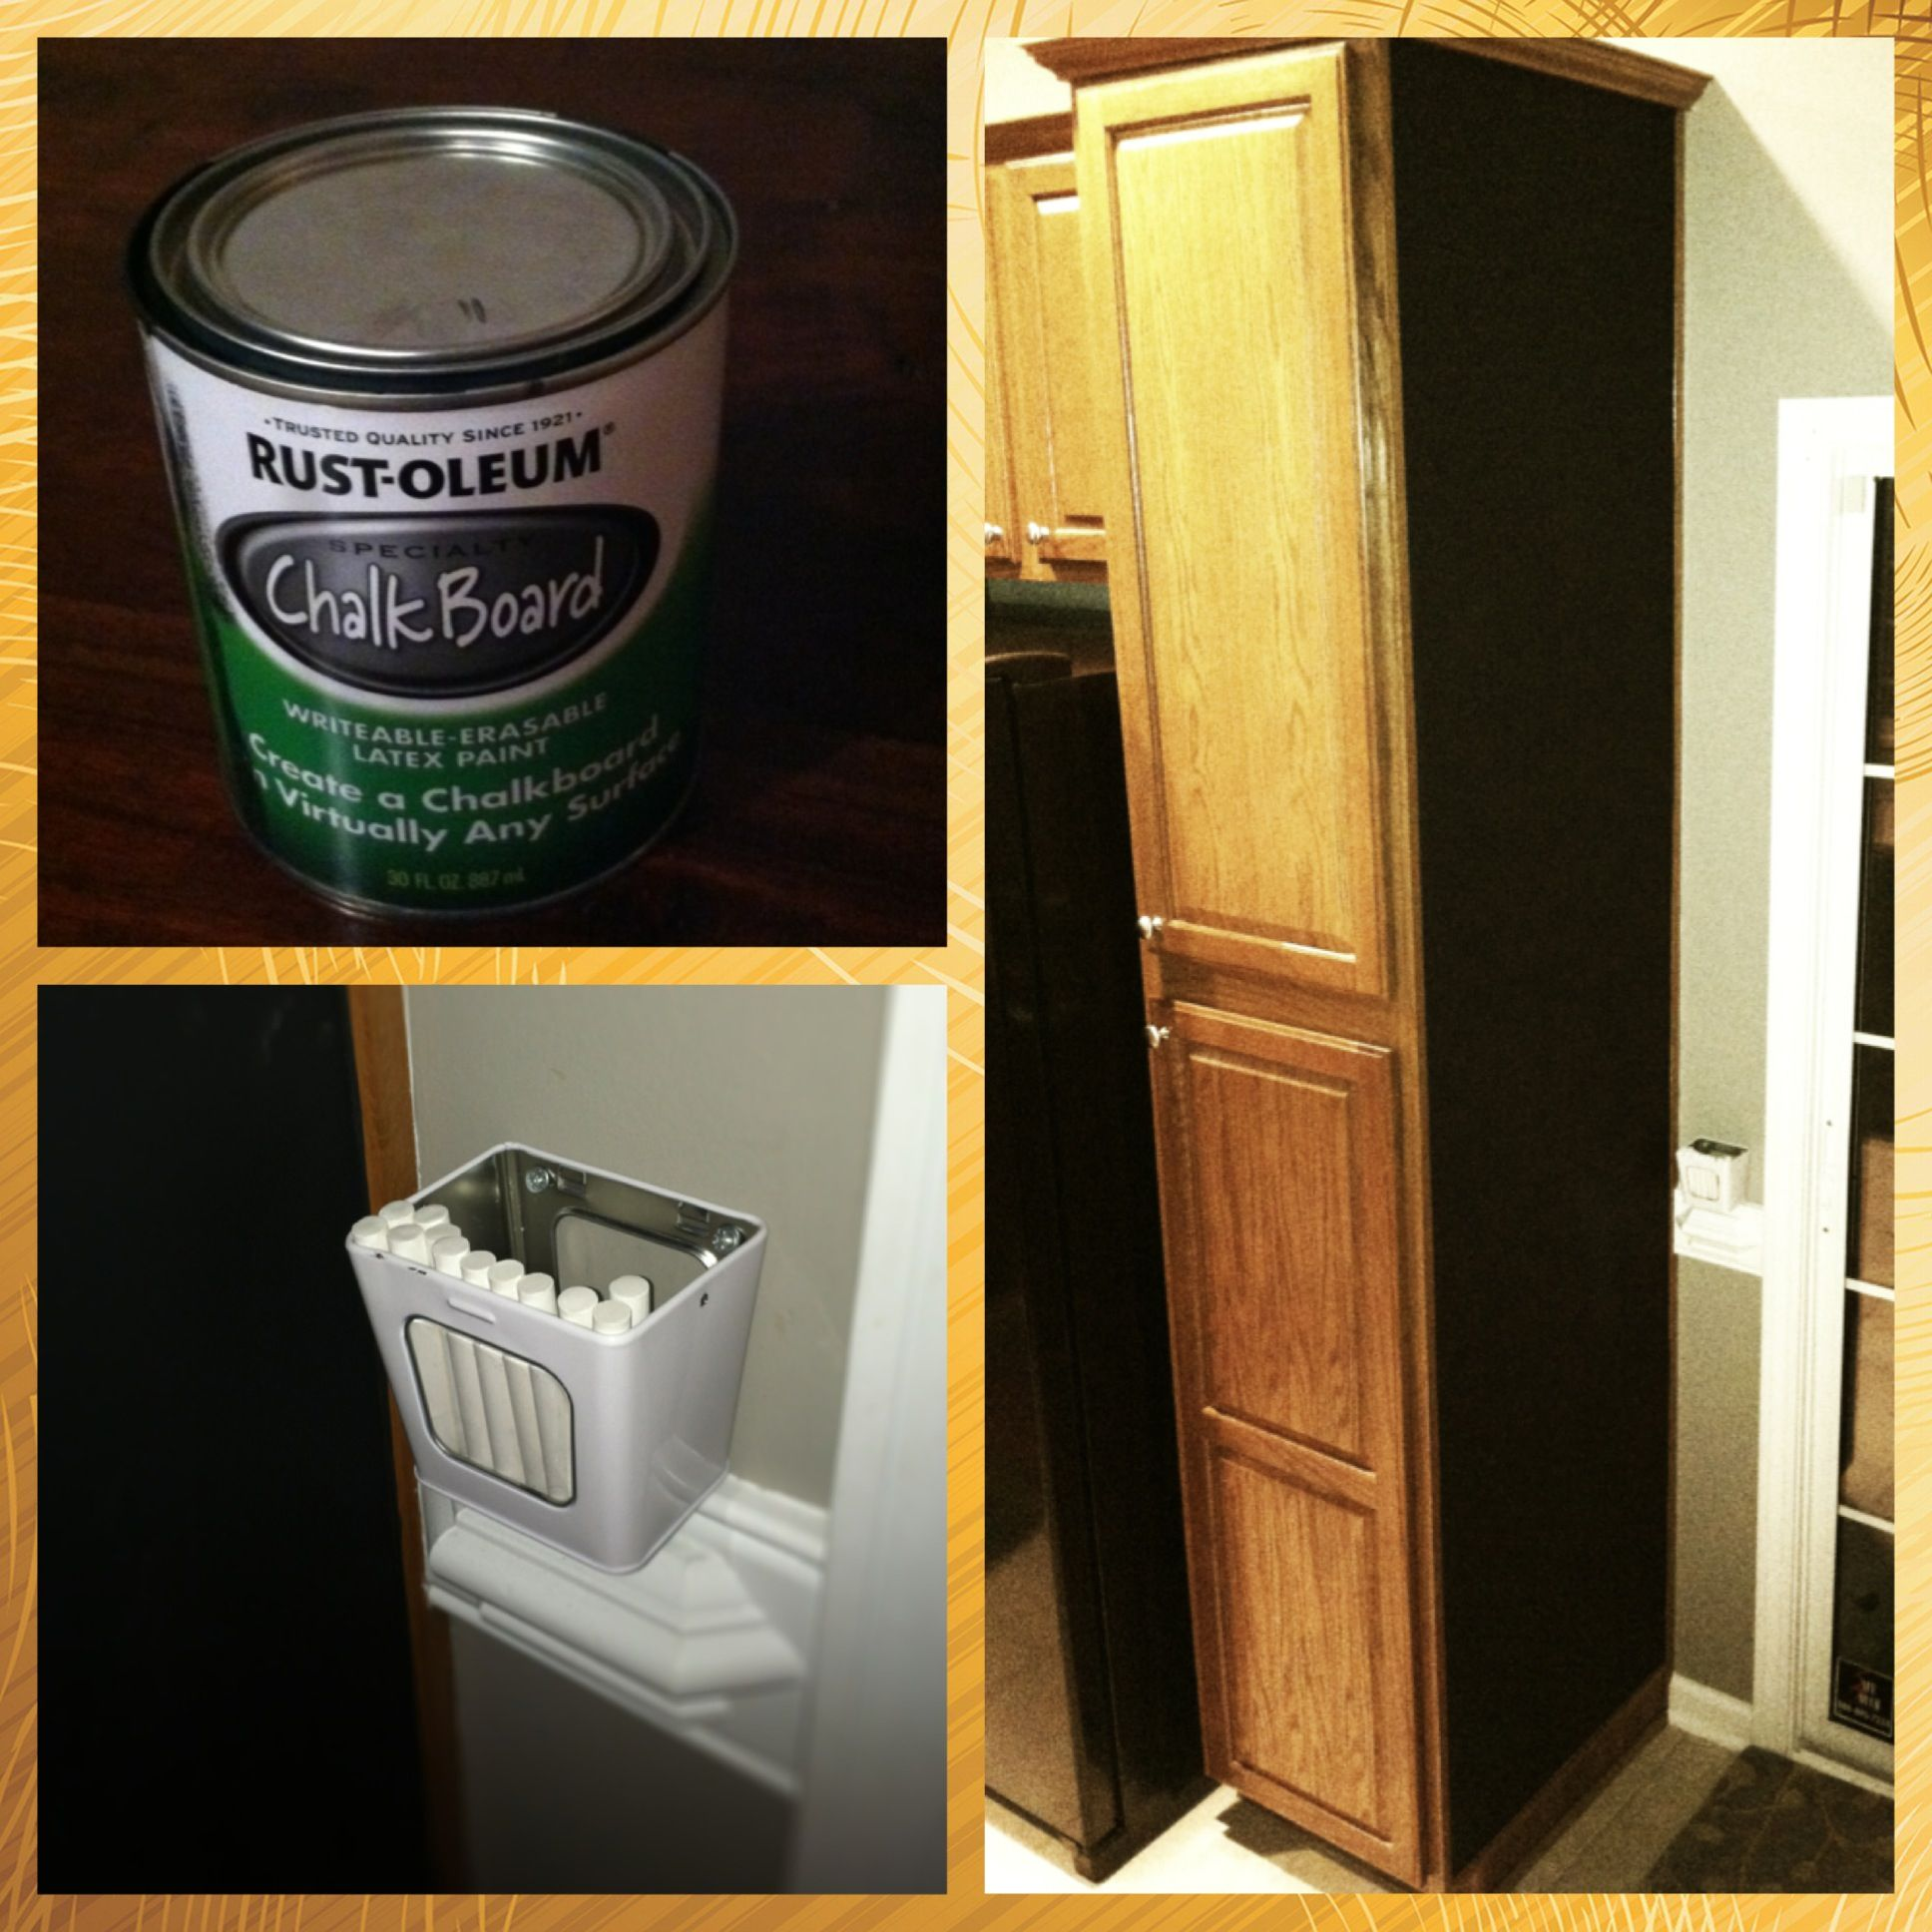 Kitchen Cabinet Chalkboards Diy How To Turn Your Cabinets Into Chalkboards Painting Kitchen Cabinets Kitchen Cabinets Makeover Chalkboard Cabinet